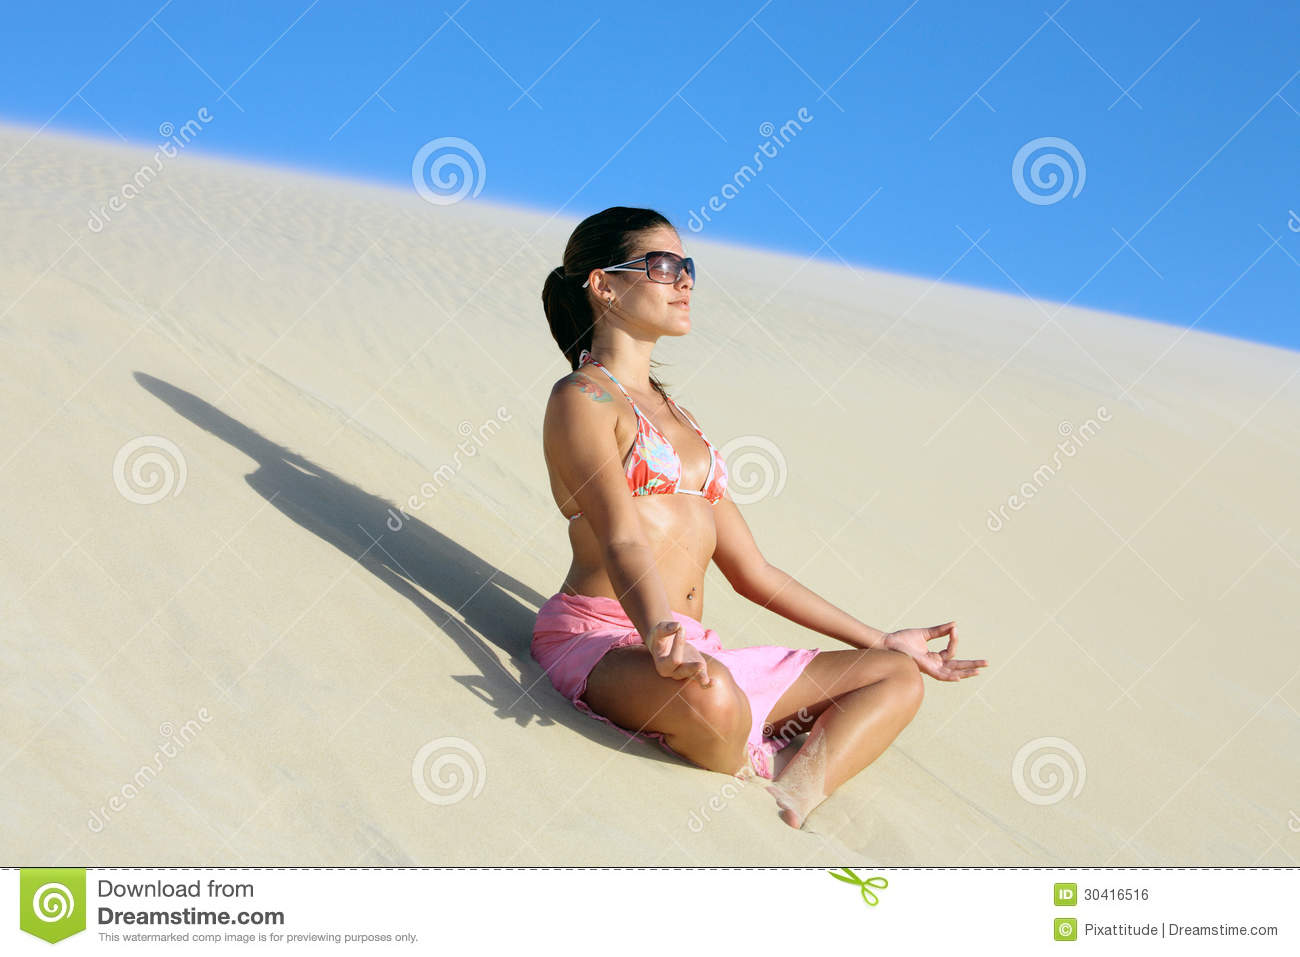 Lotus Posture Lotus On The Sand Dune Royalty Free Stock